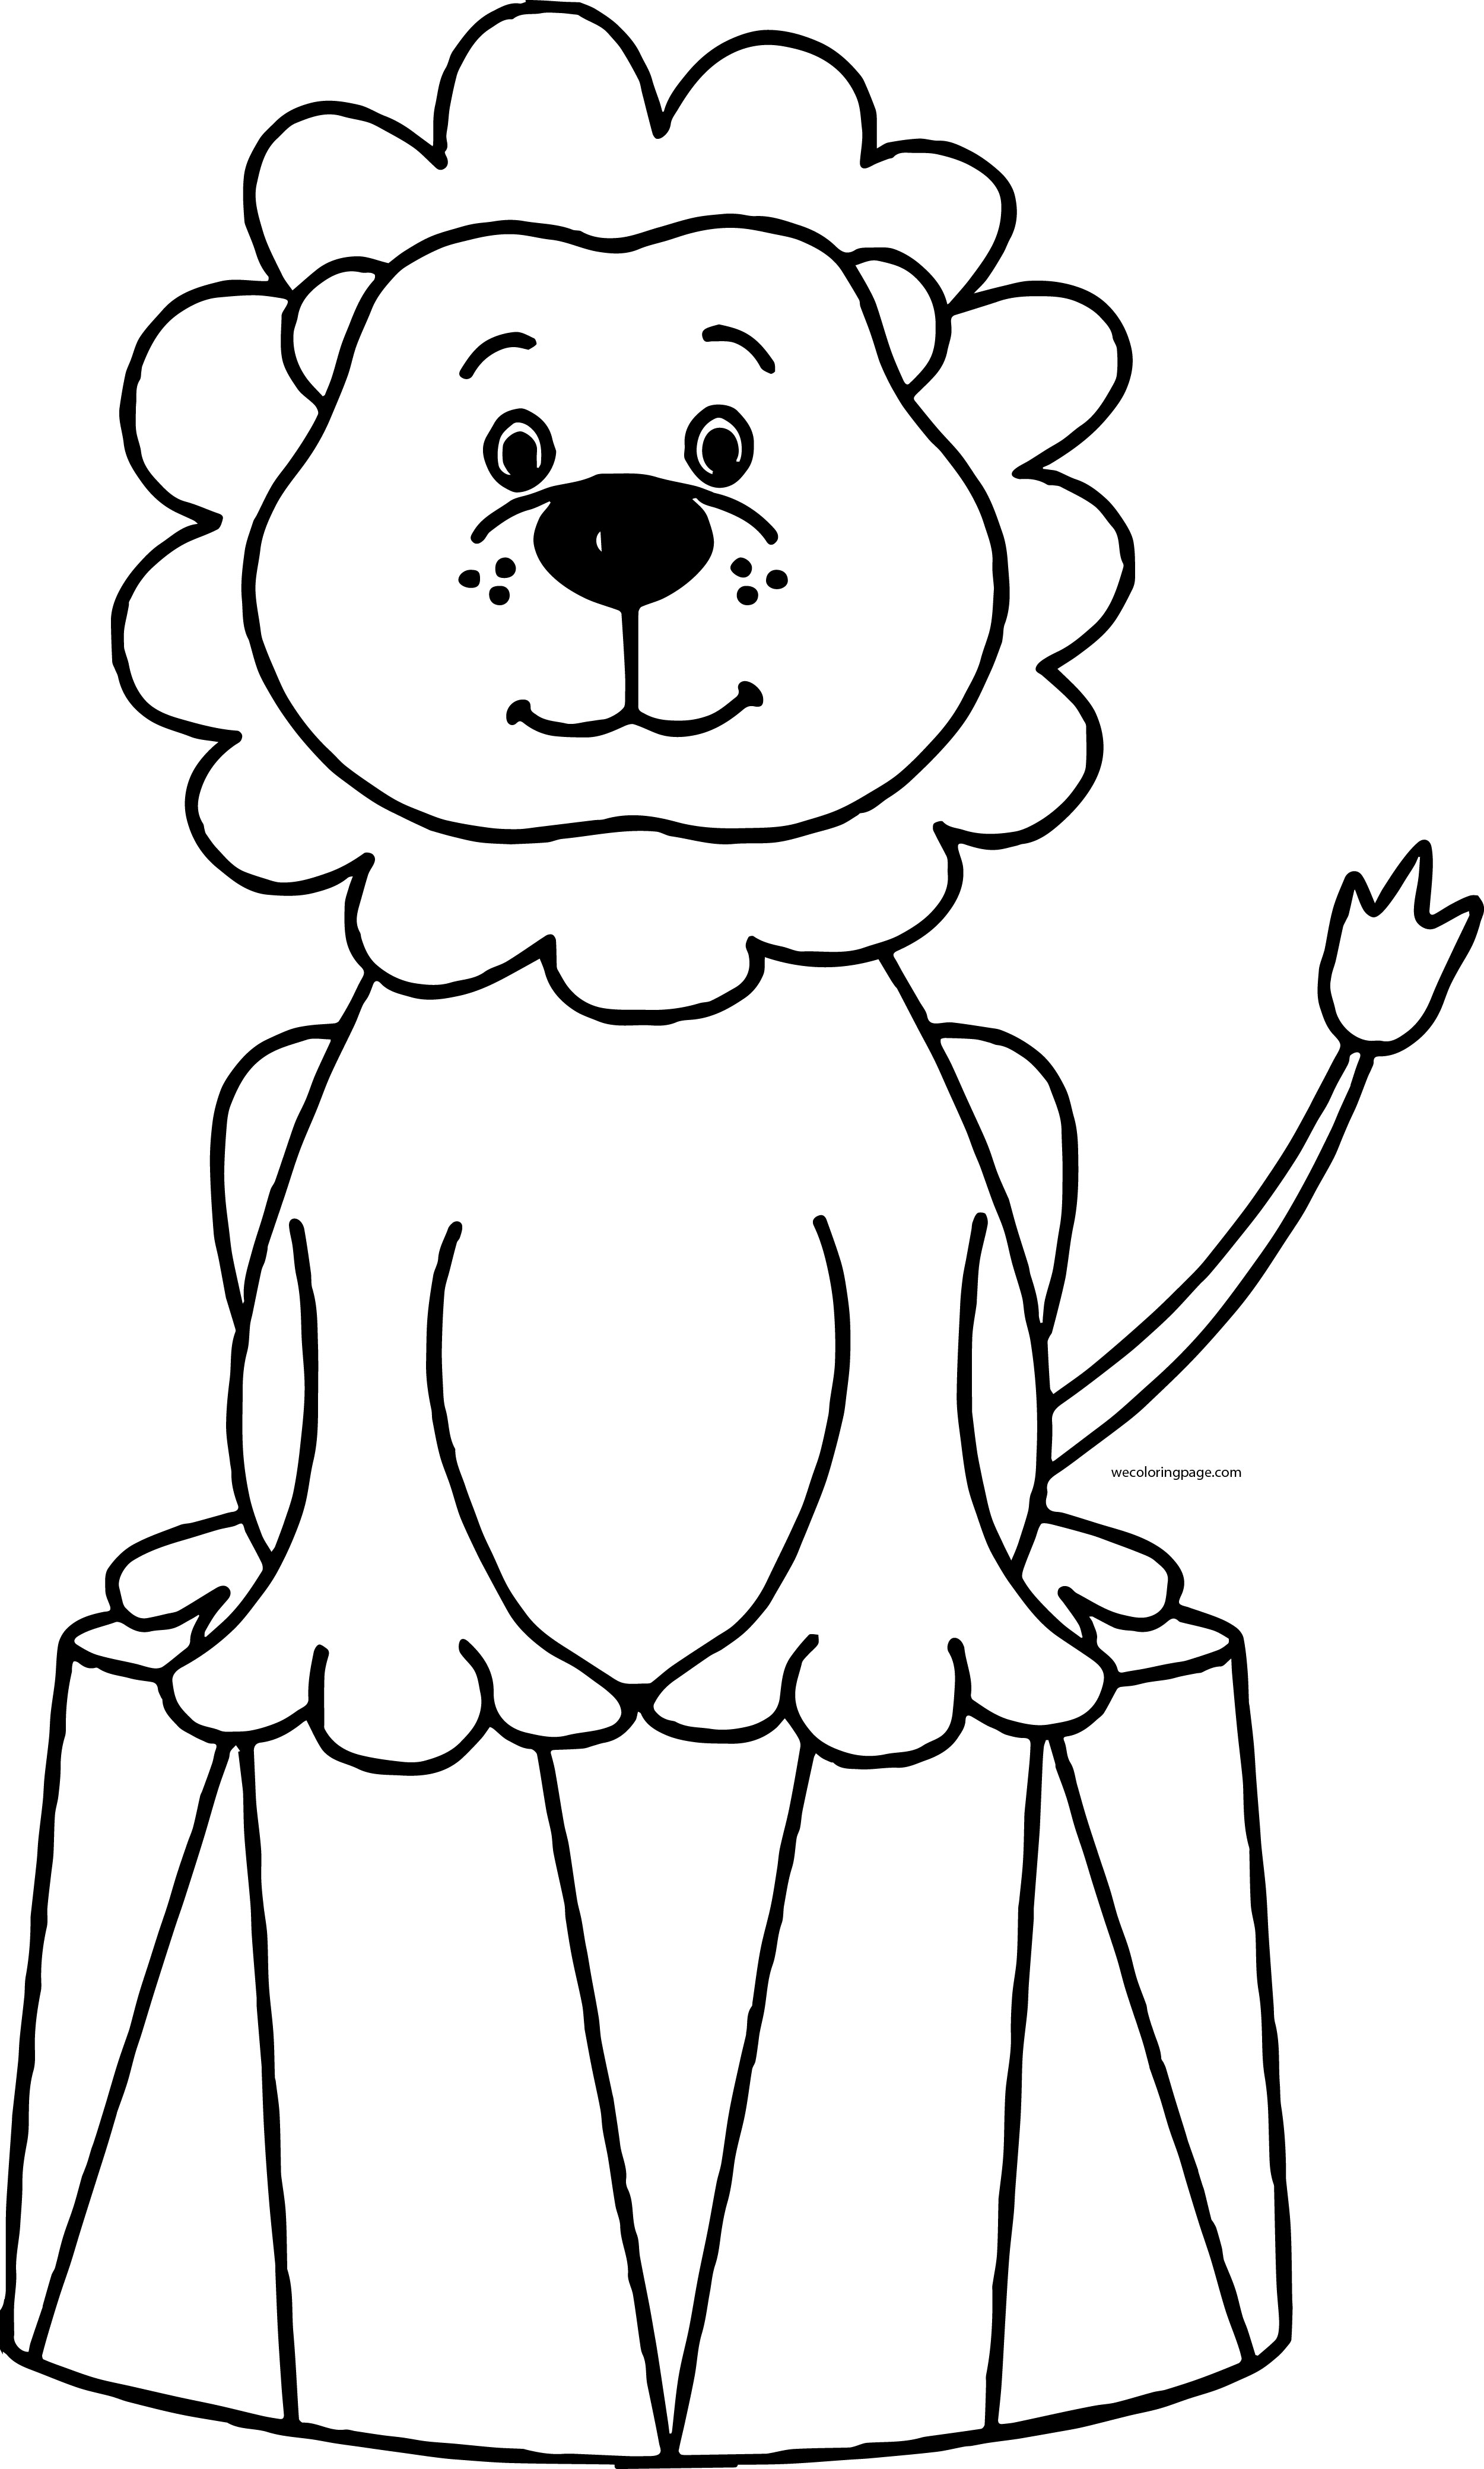 Lion Black And White Circus Lion Clipart Black And White